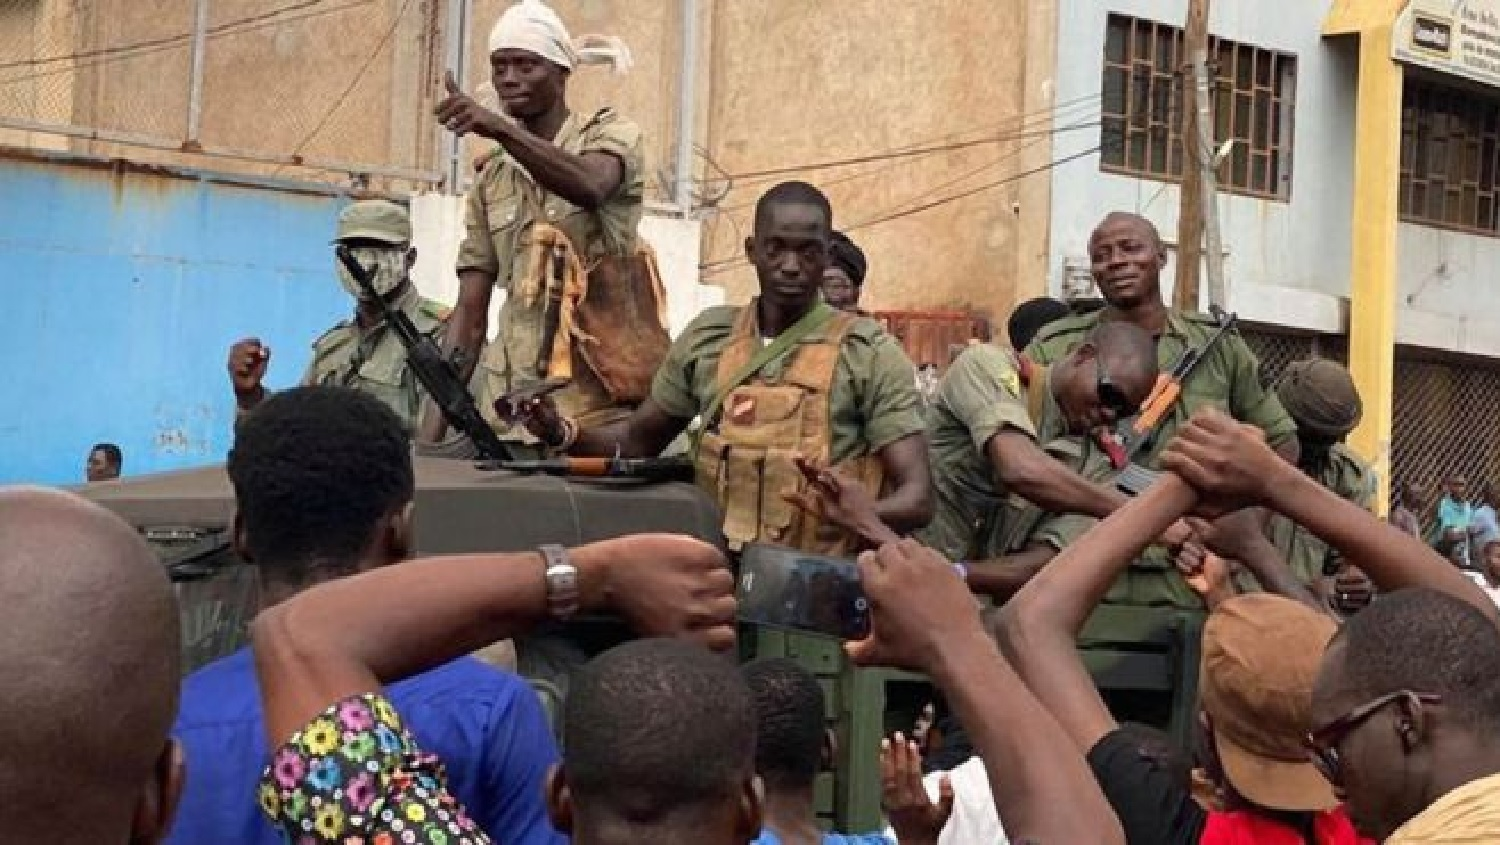 After military order, Mali's ministers, MPs return dozens of luxurious vehicles